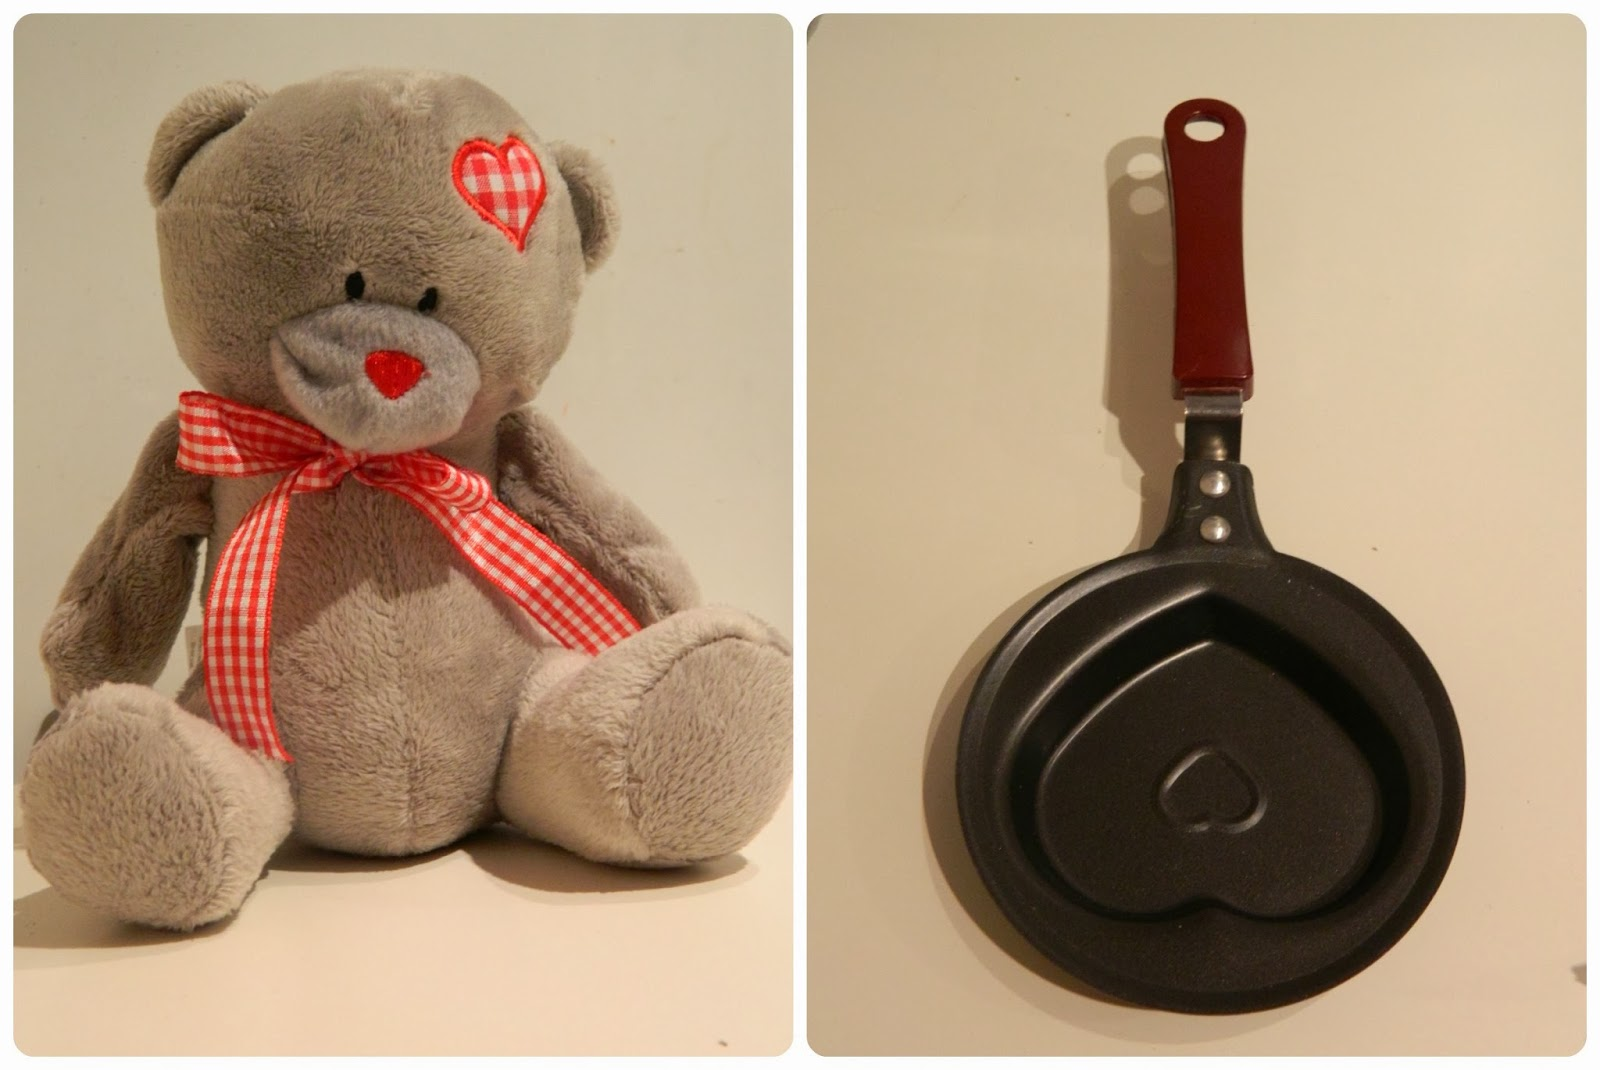 Home Bargains Valentine's Teddy Bear and heart shaped frying pan